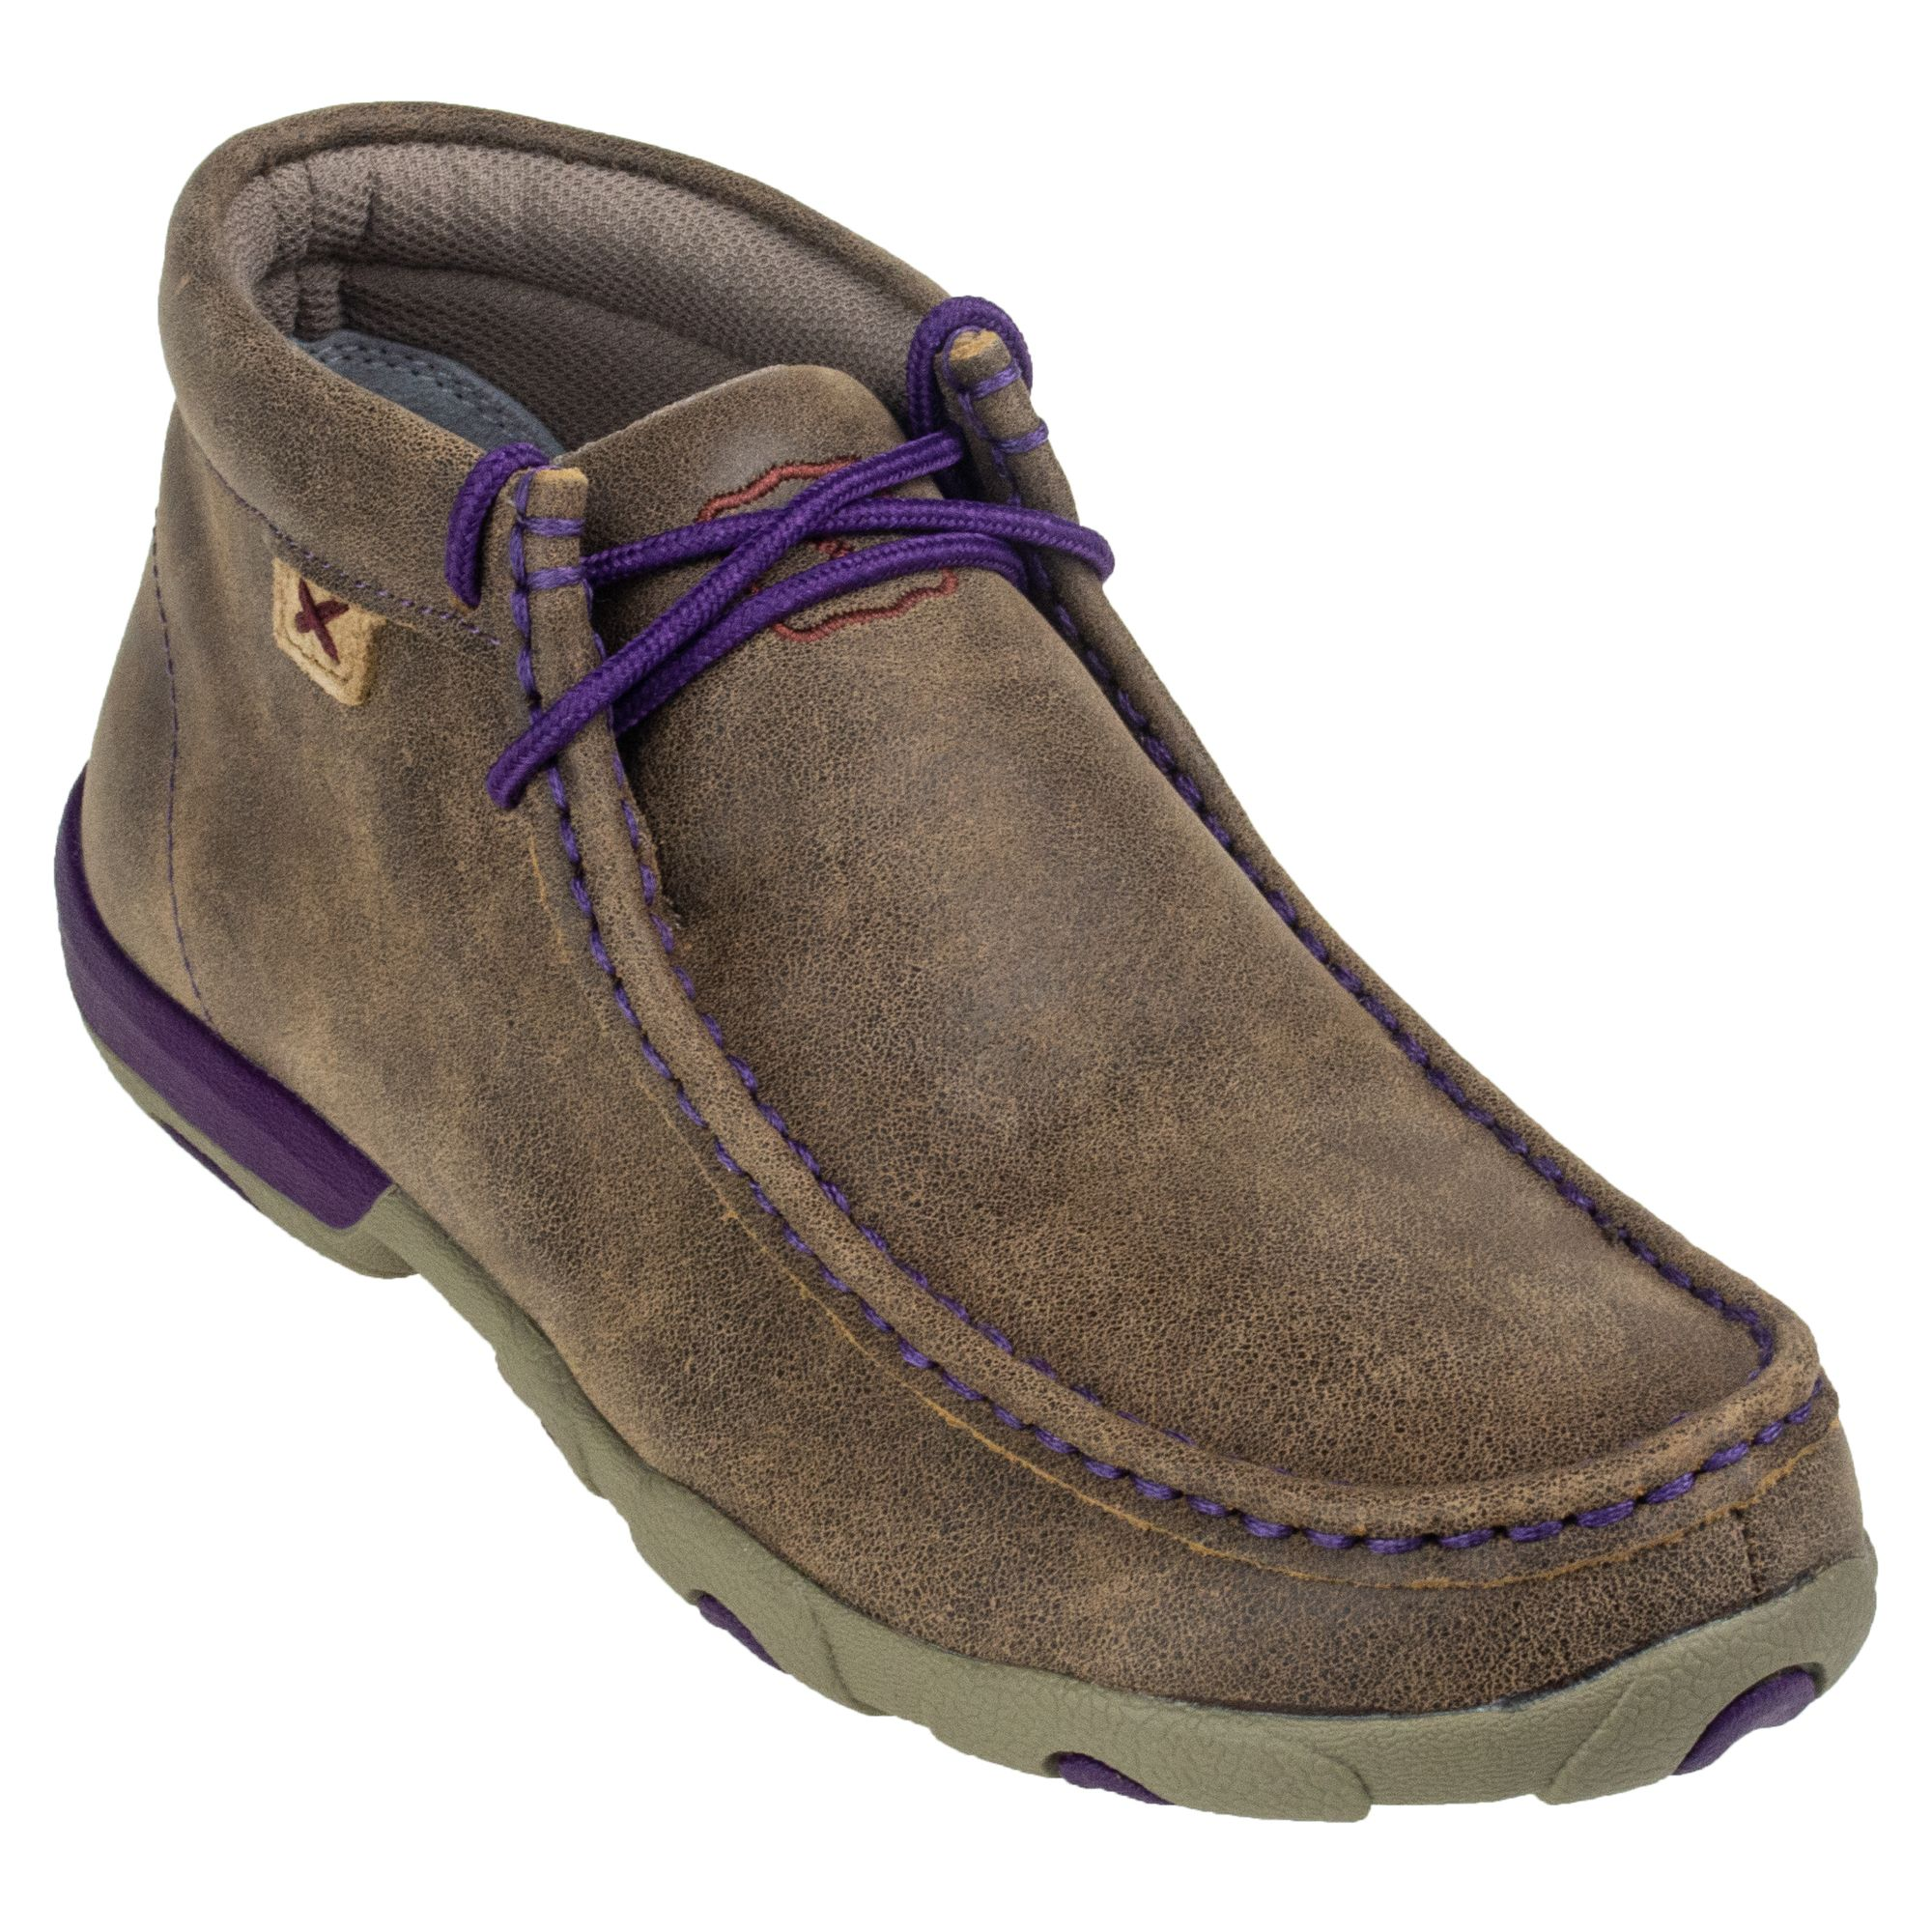 2b1694d2947 Twisted X Women's Purple WDM0015 Driving Moccasins | Products in ...